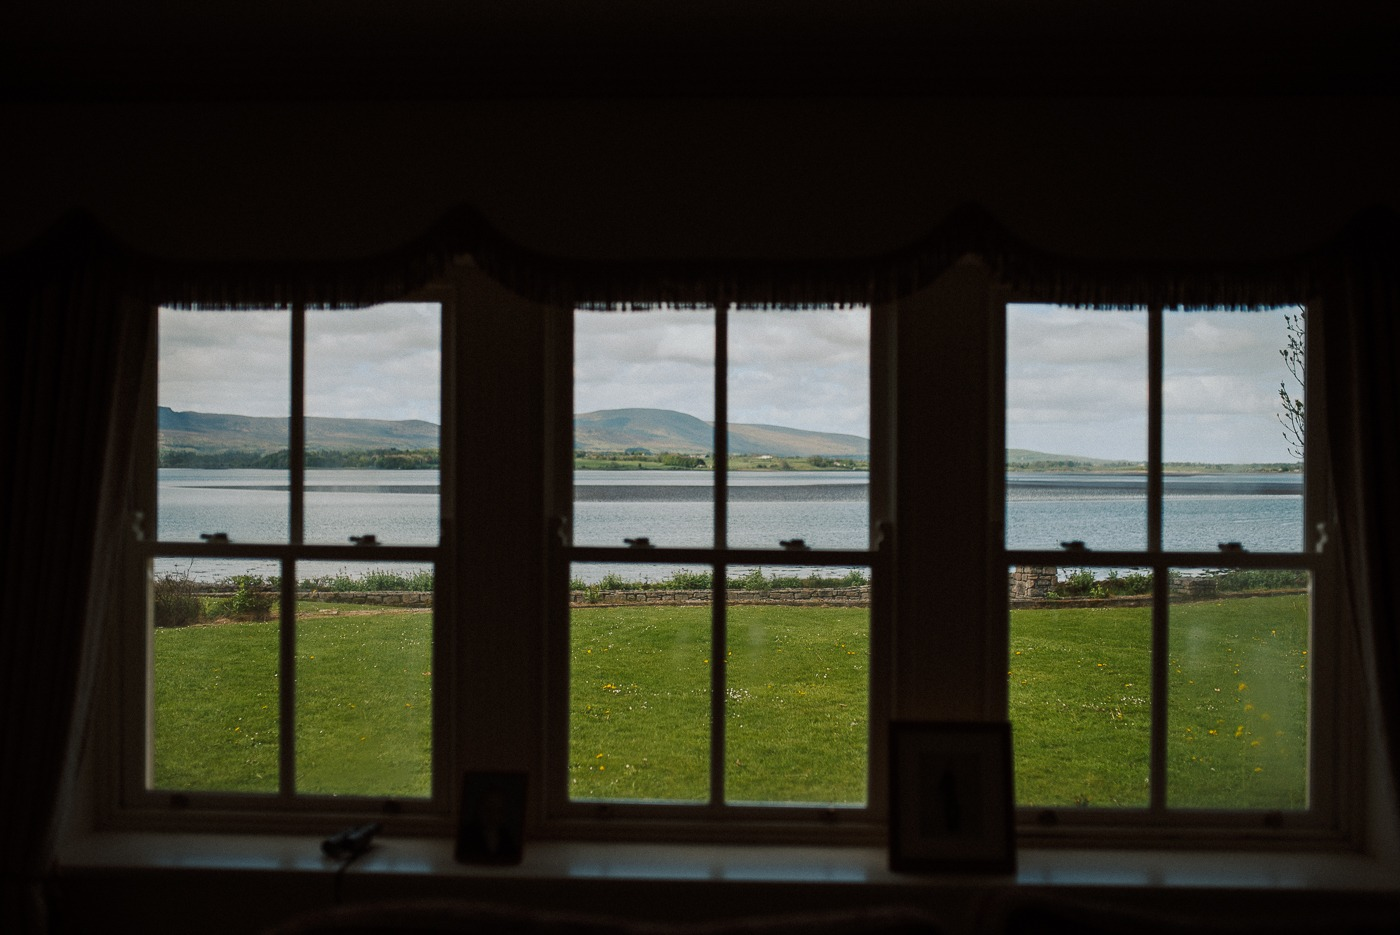 A view of a body of water in front of a window